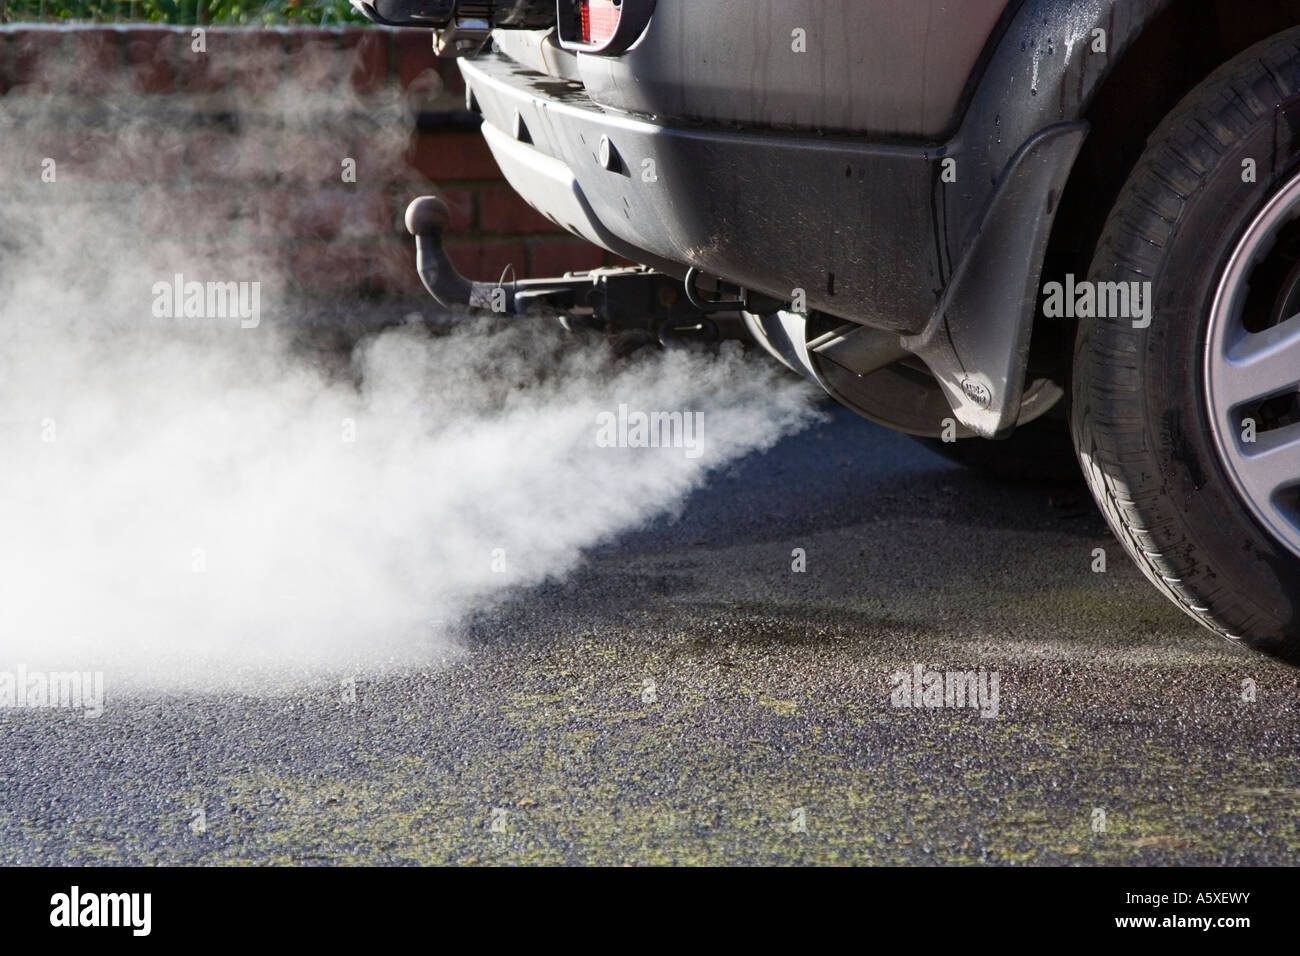 exhaust cloud from a car  engine revving  uk  pollution